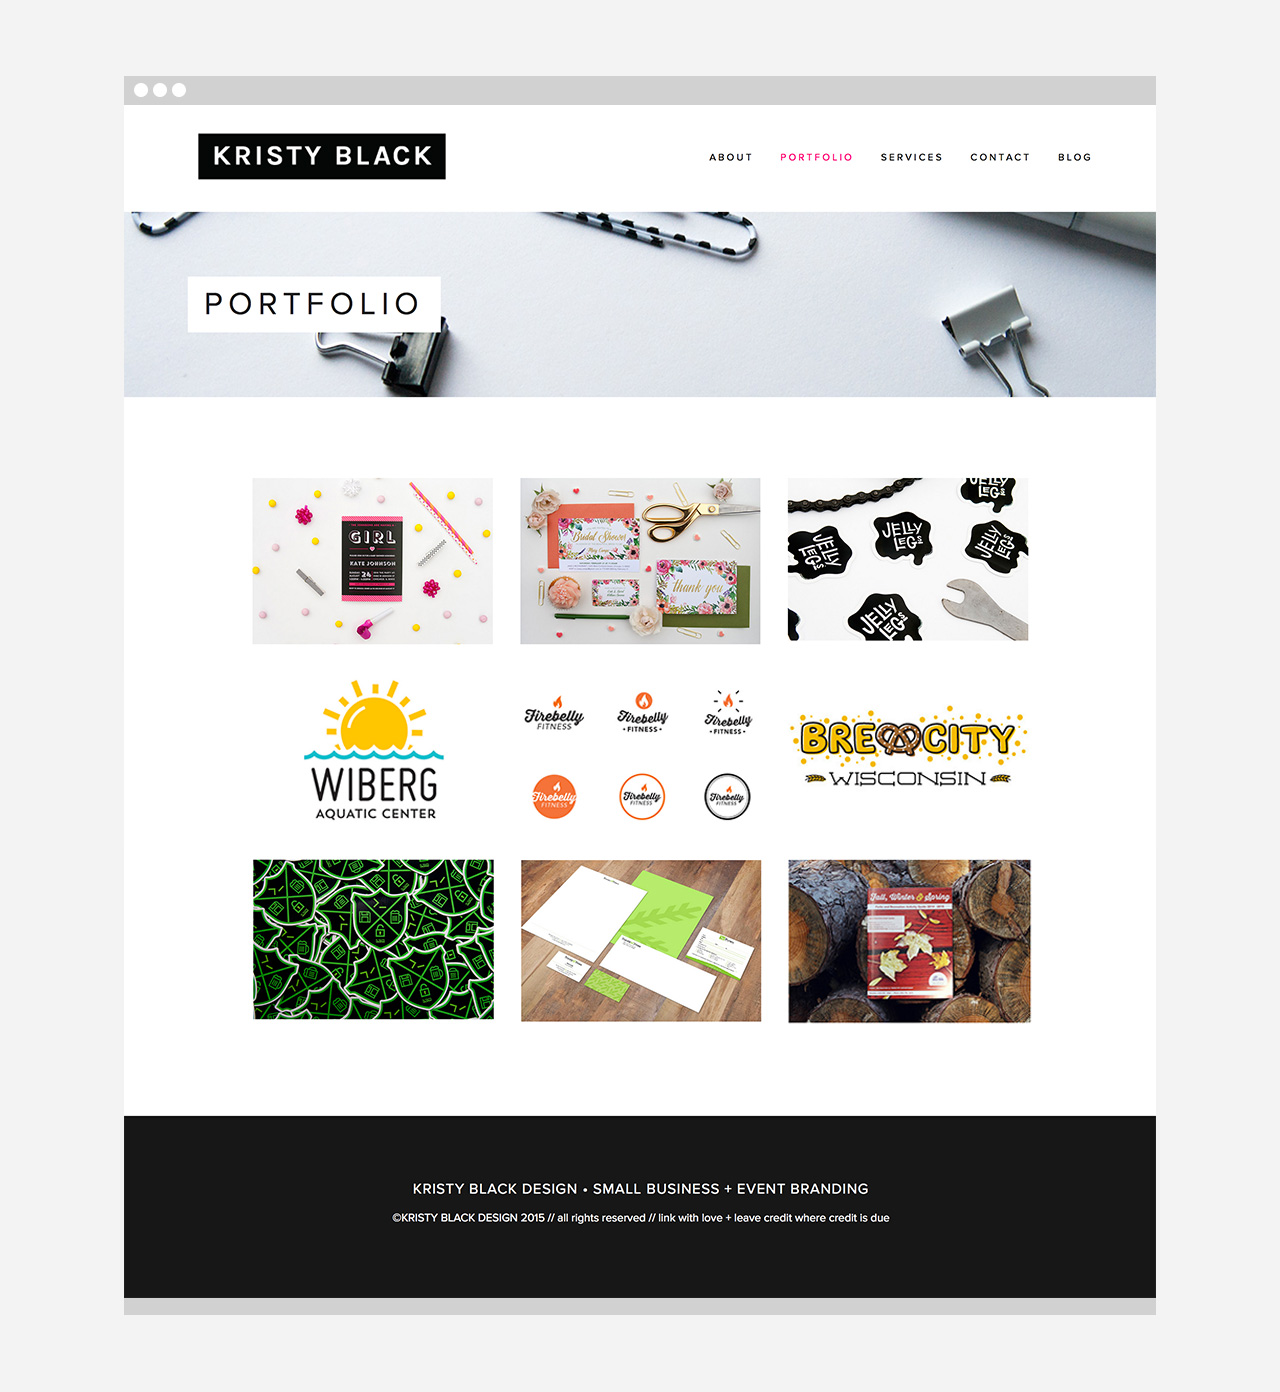 Kristy Black Design New Website Launch!